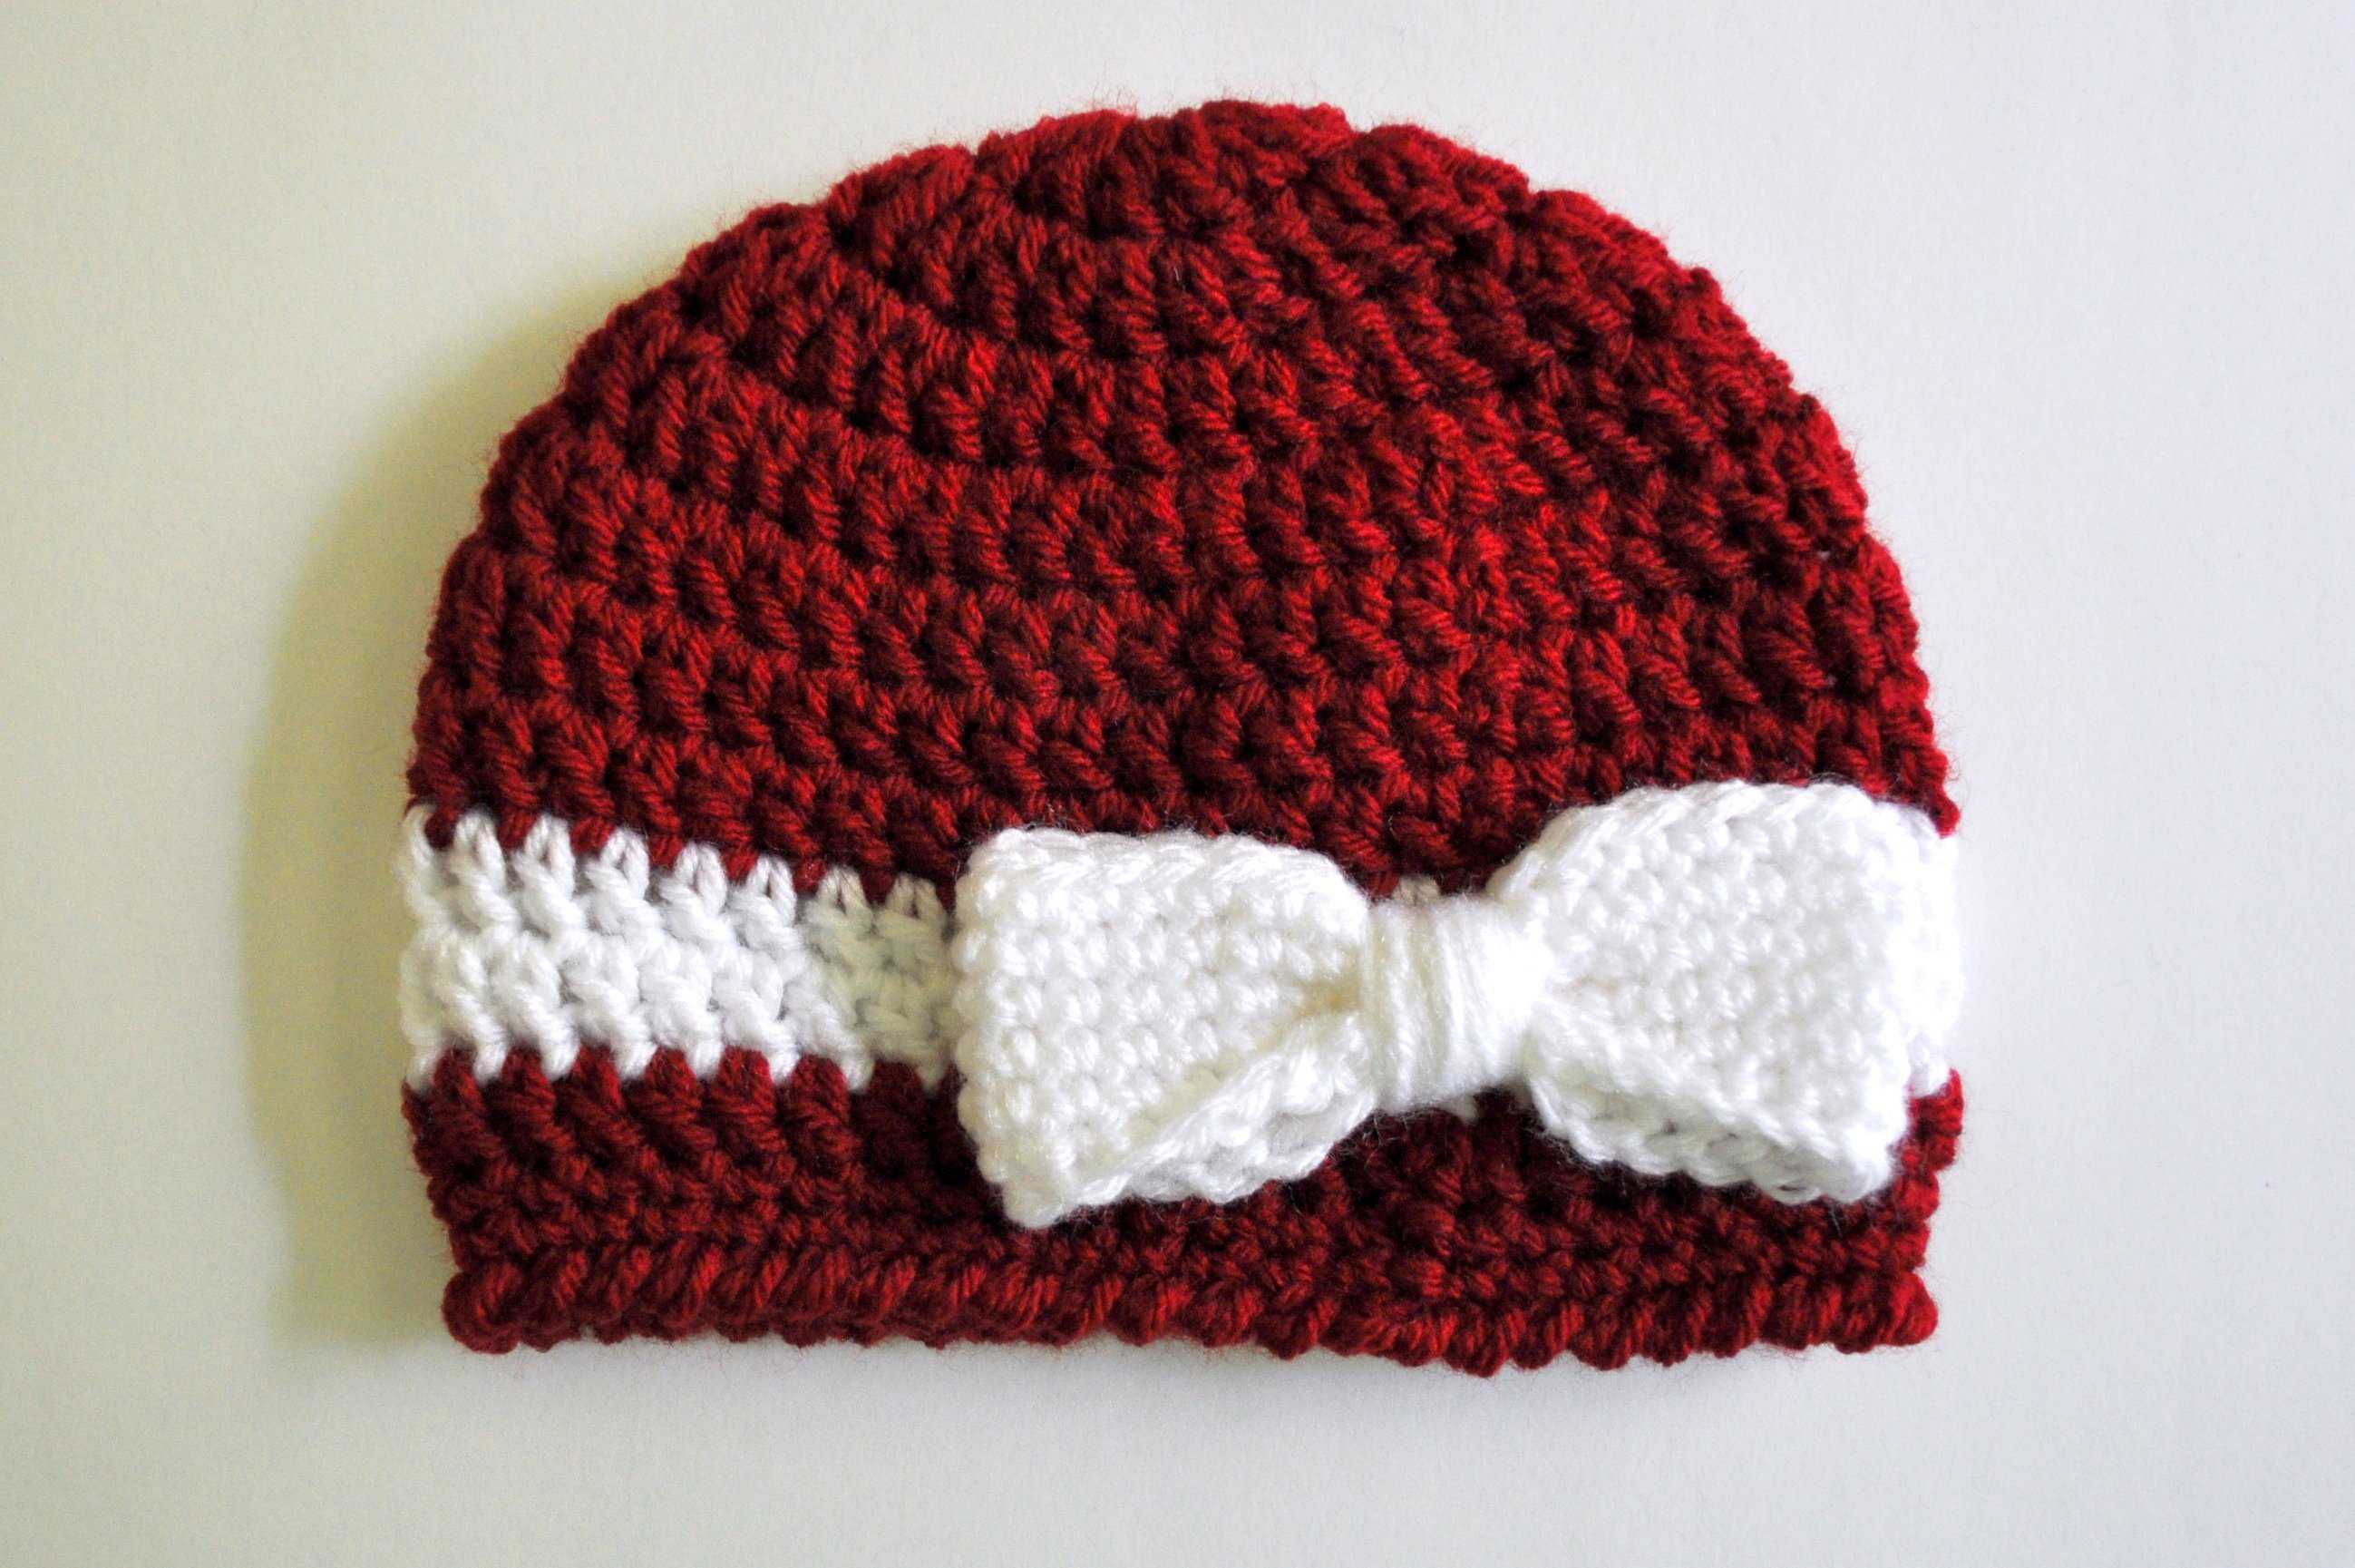 Free Patterns Crochet For Hats : 25 Easy Crochet Bow Patterns Guide Patterns